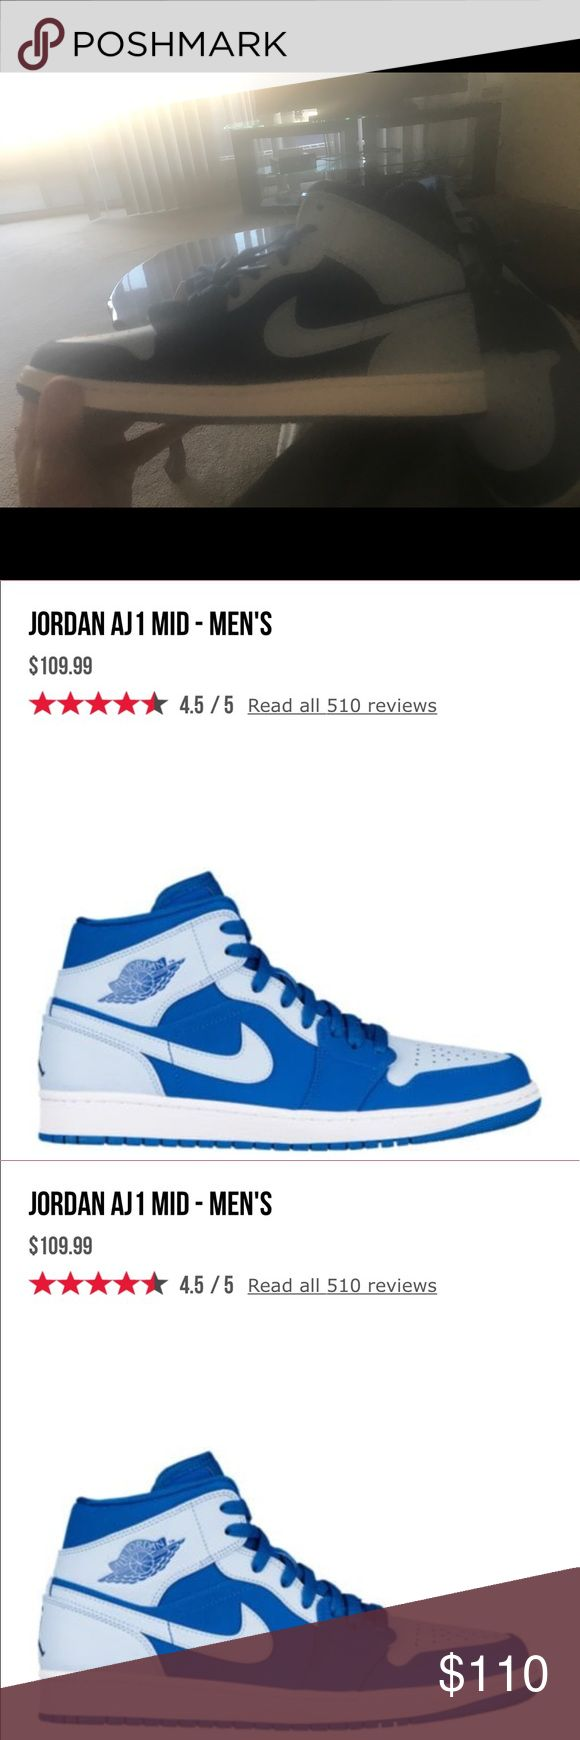 Jordan AJ1 mid size 10.5 brand new White and royal blue Jordan ones. I simply ordered two sizes and the 10 1/2's were too small. Decided to sell on here instead.  More photos are available upon request Jordan Shoes Sneakers